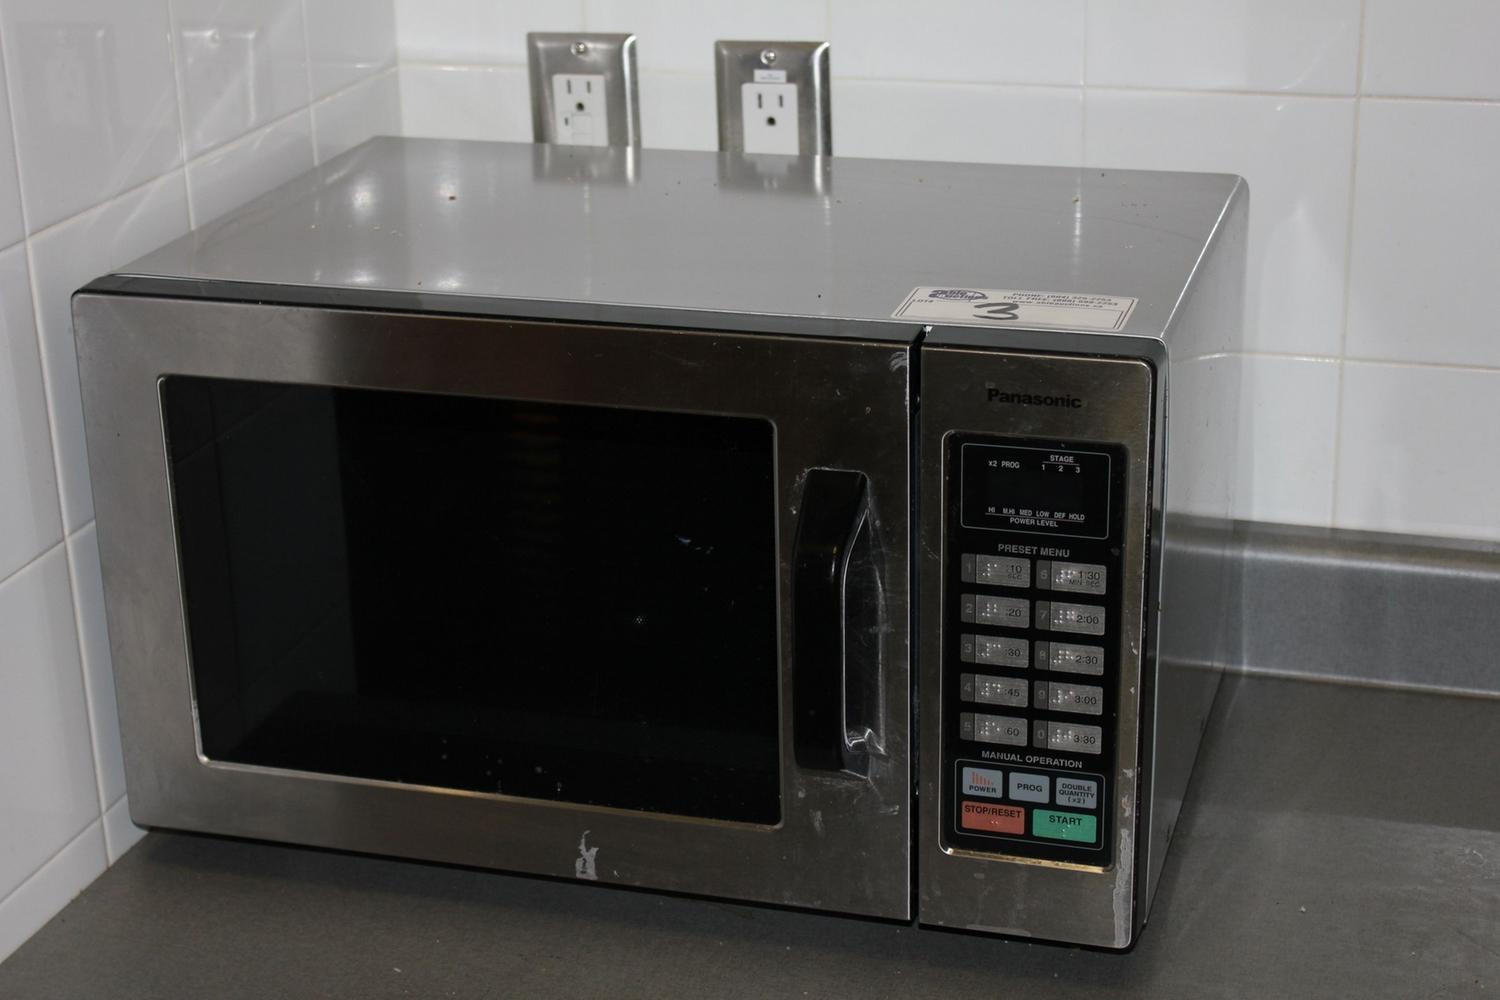 Old fashioned microwave oven 98